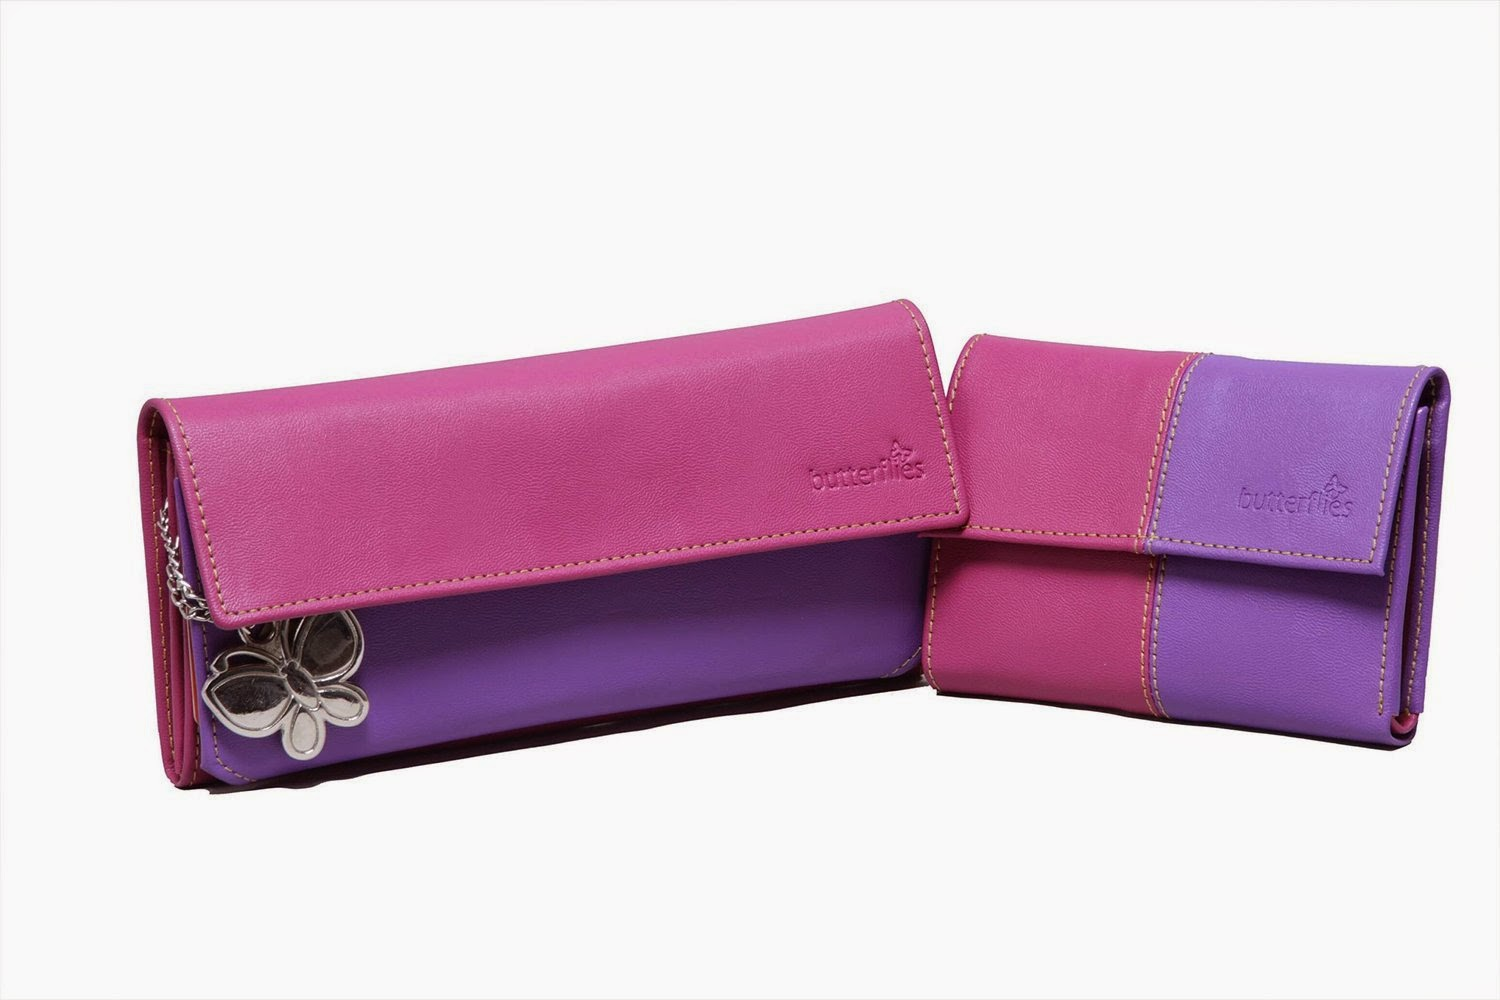 Butterflies Combo Wallet (Pink and Purple) for Rs 399